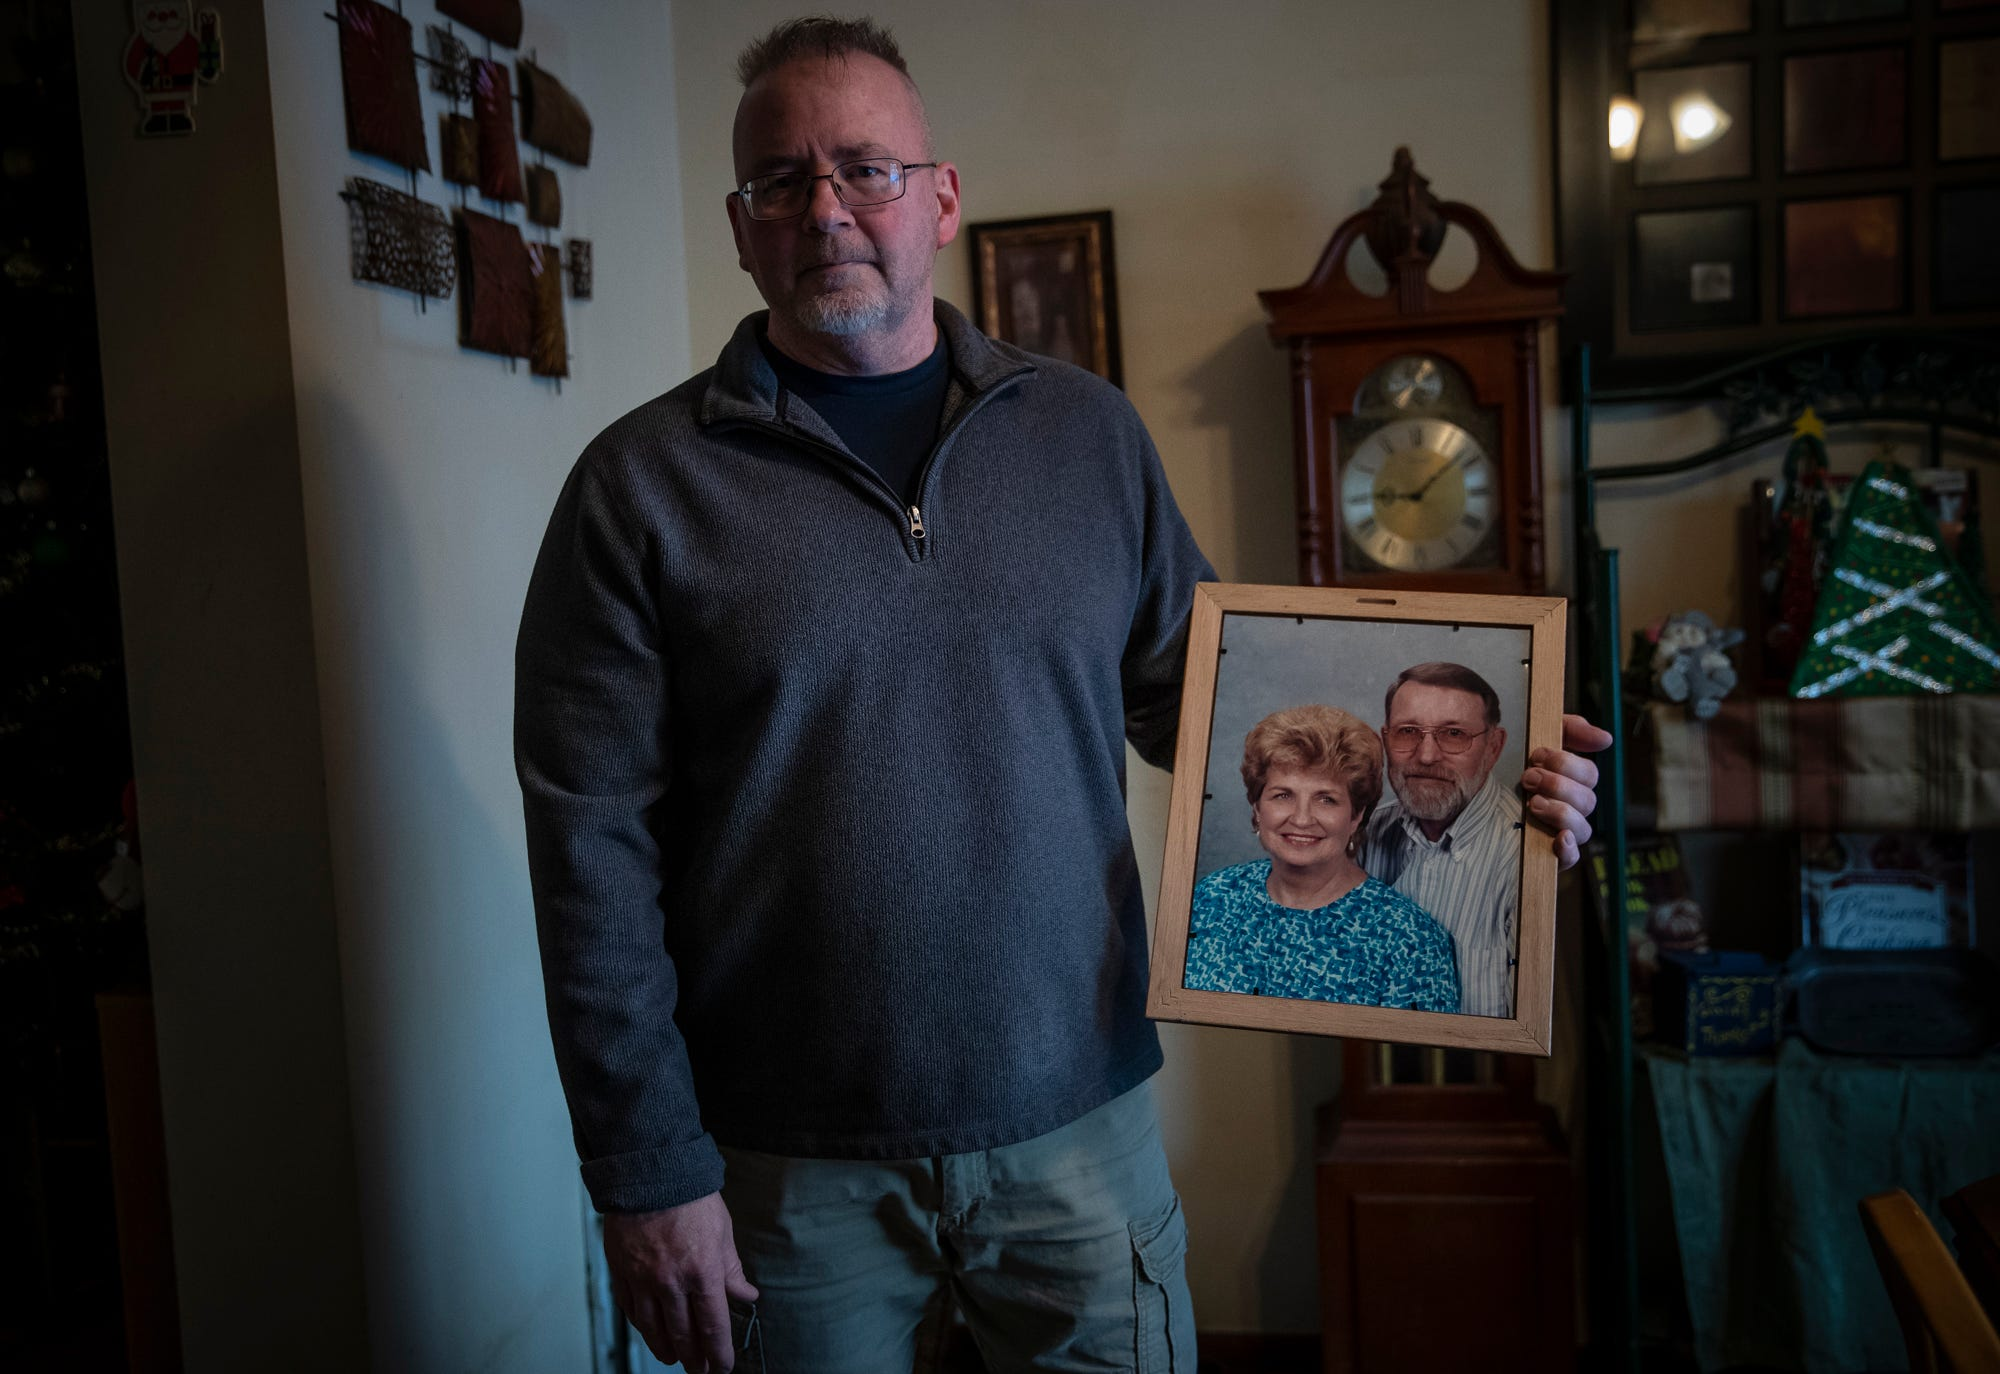 Jay Upton, a Goshen resident and Elkhart corrections officer, insists his mother, Karen Zimmerman, didn't have to die after staying at the Avalon Village nursing home in Ligonier, Ind.